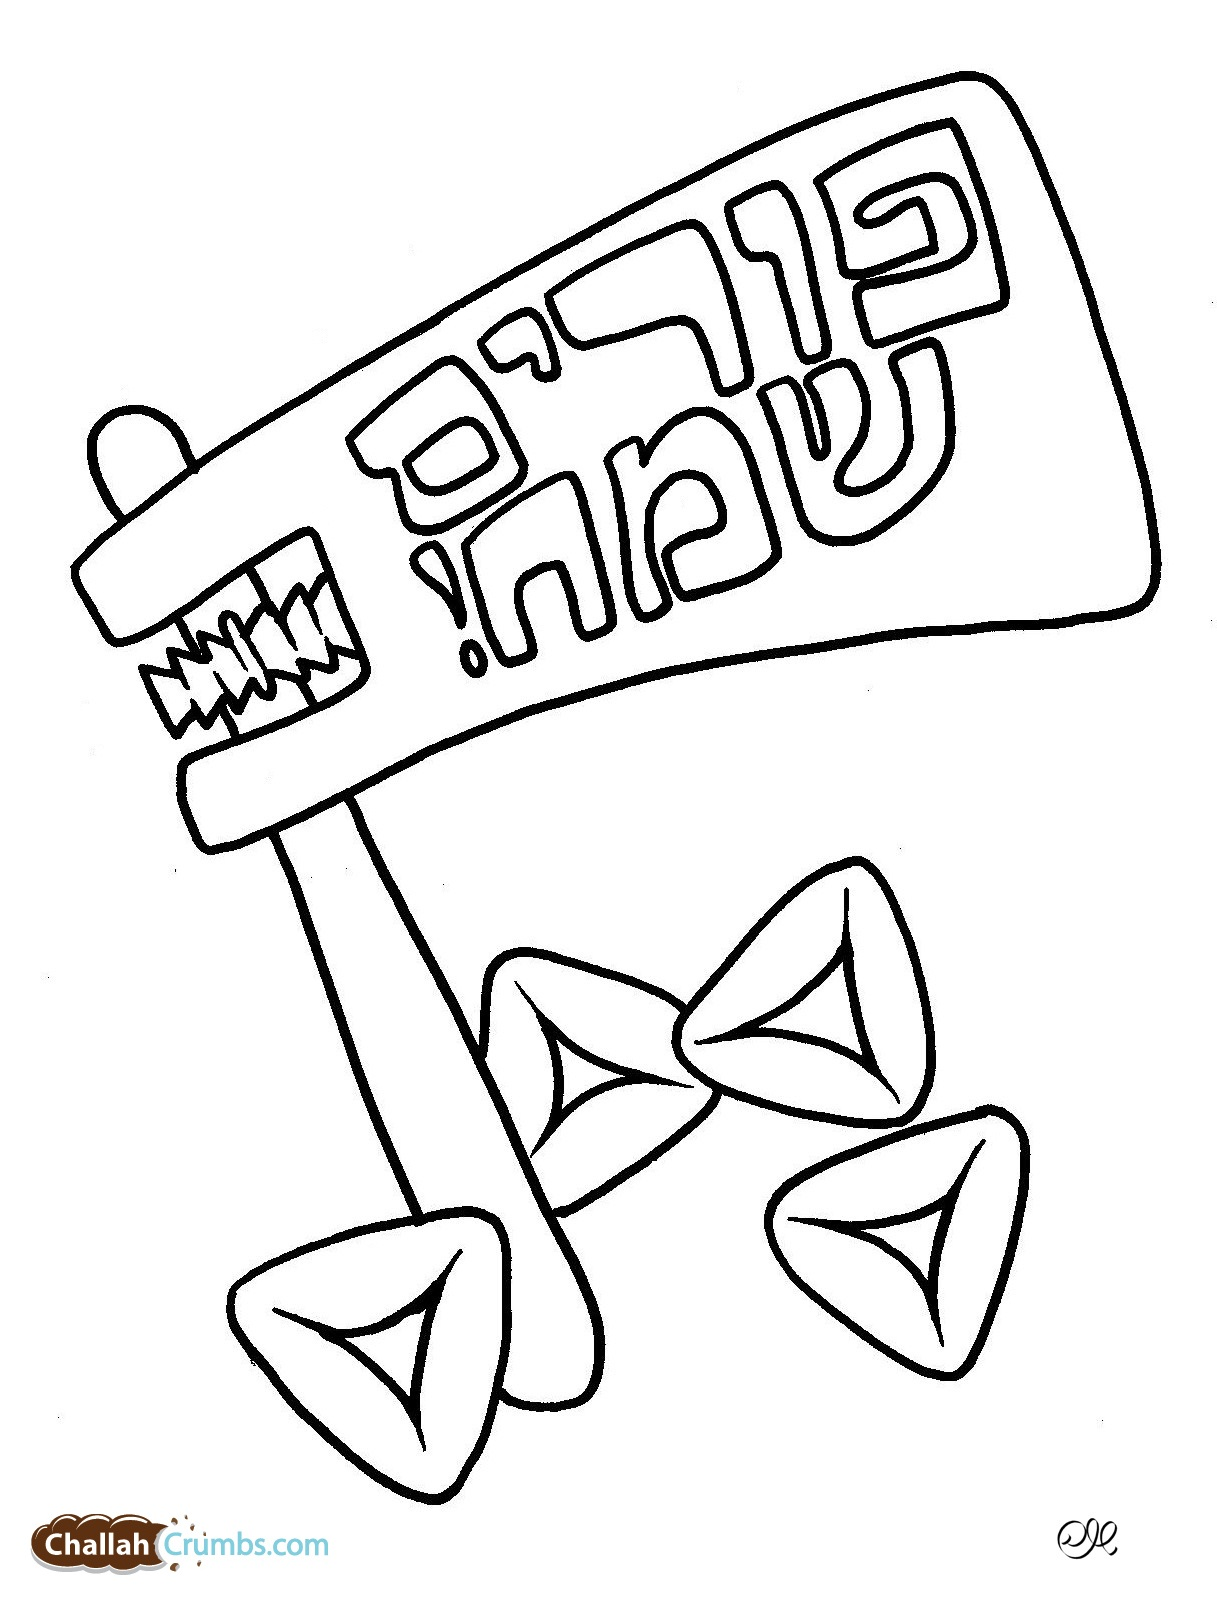 Purim Gragger Challah Crumbs Purim Coloring Pages